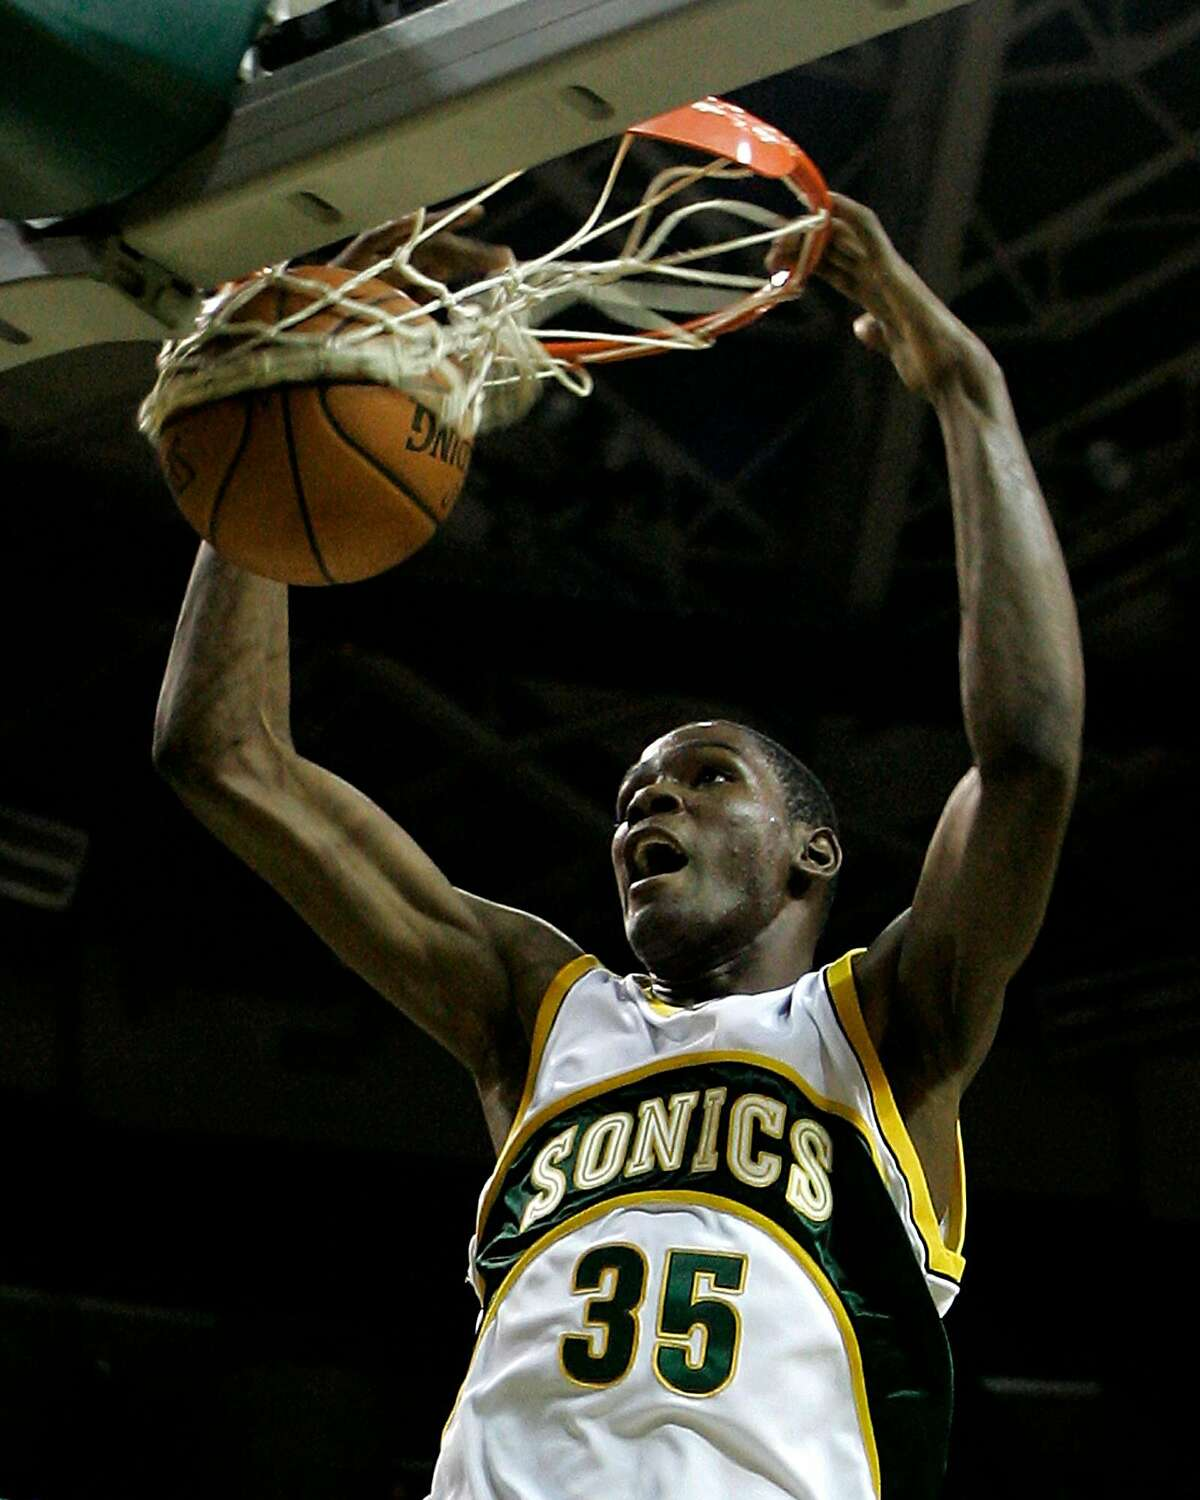 Seattle SuperSonics forward Kevin Durant dunks in the second quarter of an NBA basketball exhibition game as Golden State Warriors' Baron Davis, left, and Al Harrington, right, look on along with Sonics' Wally Szczerbiak, second from right, Tuesday, Oct. 23, 2007, at KeyArena in Seattle. (AP Photo/Ted S. Warren)